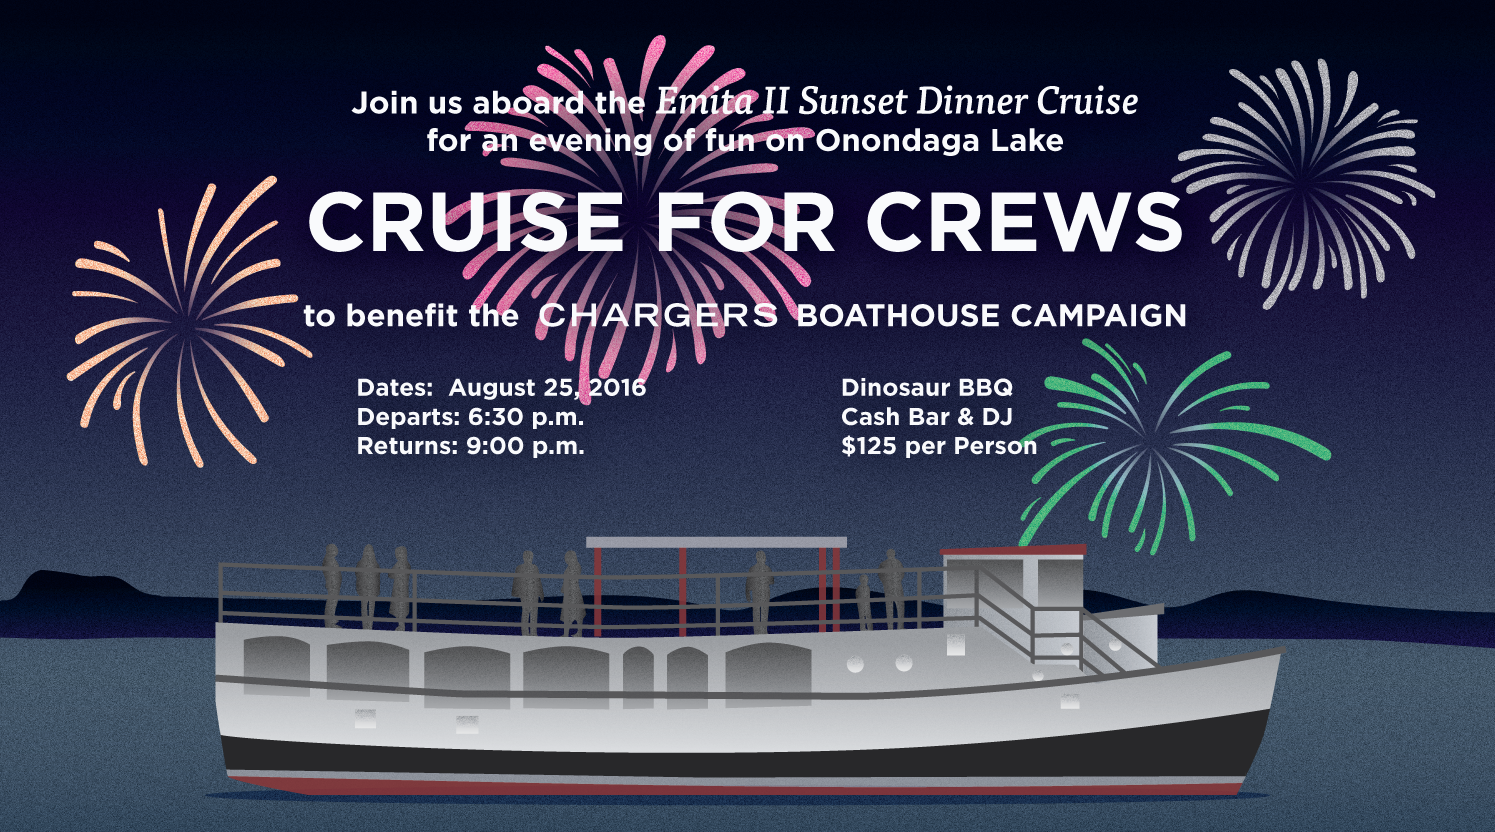 cruiseforcrews-banner